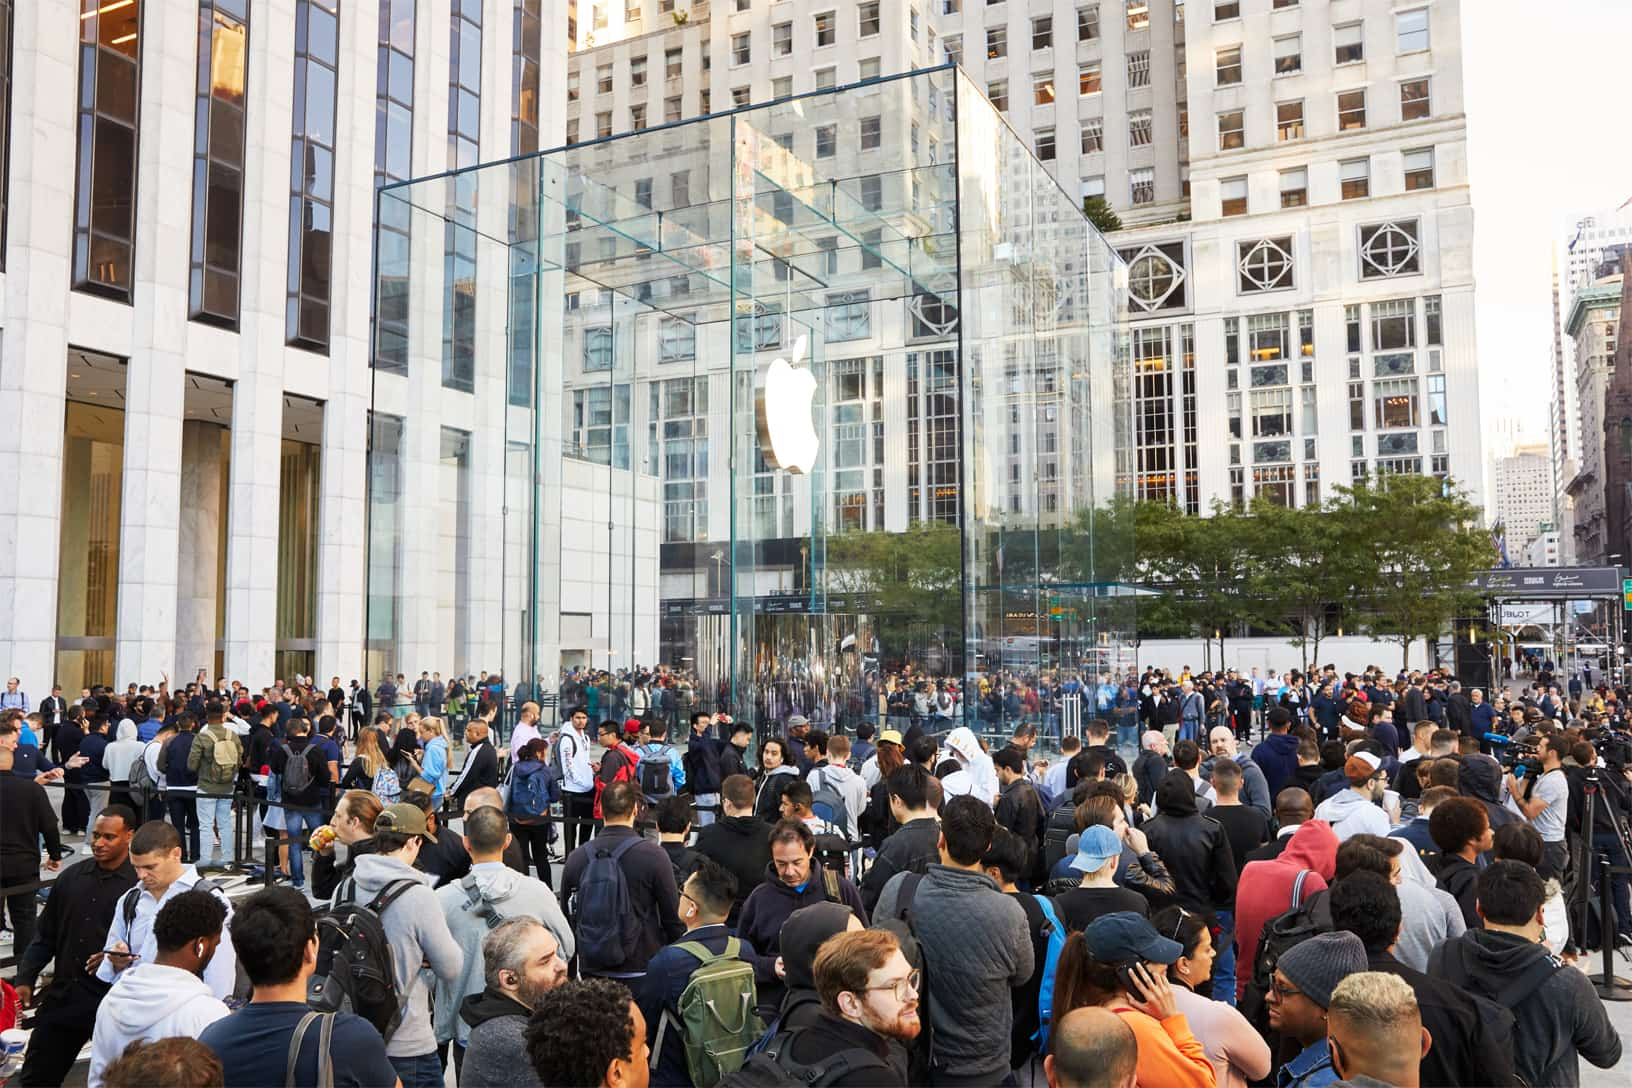 Apple Iphone 11 Pro Apple Watch 5 Availability Ny Exterior Crowd 5th Ave 092019